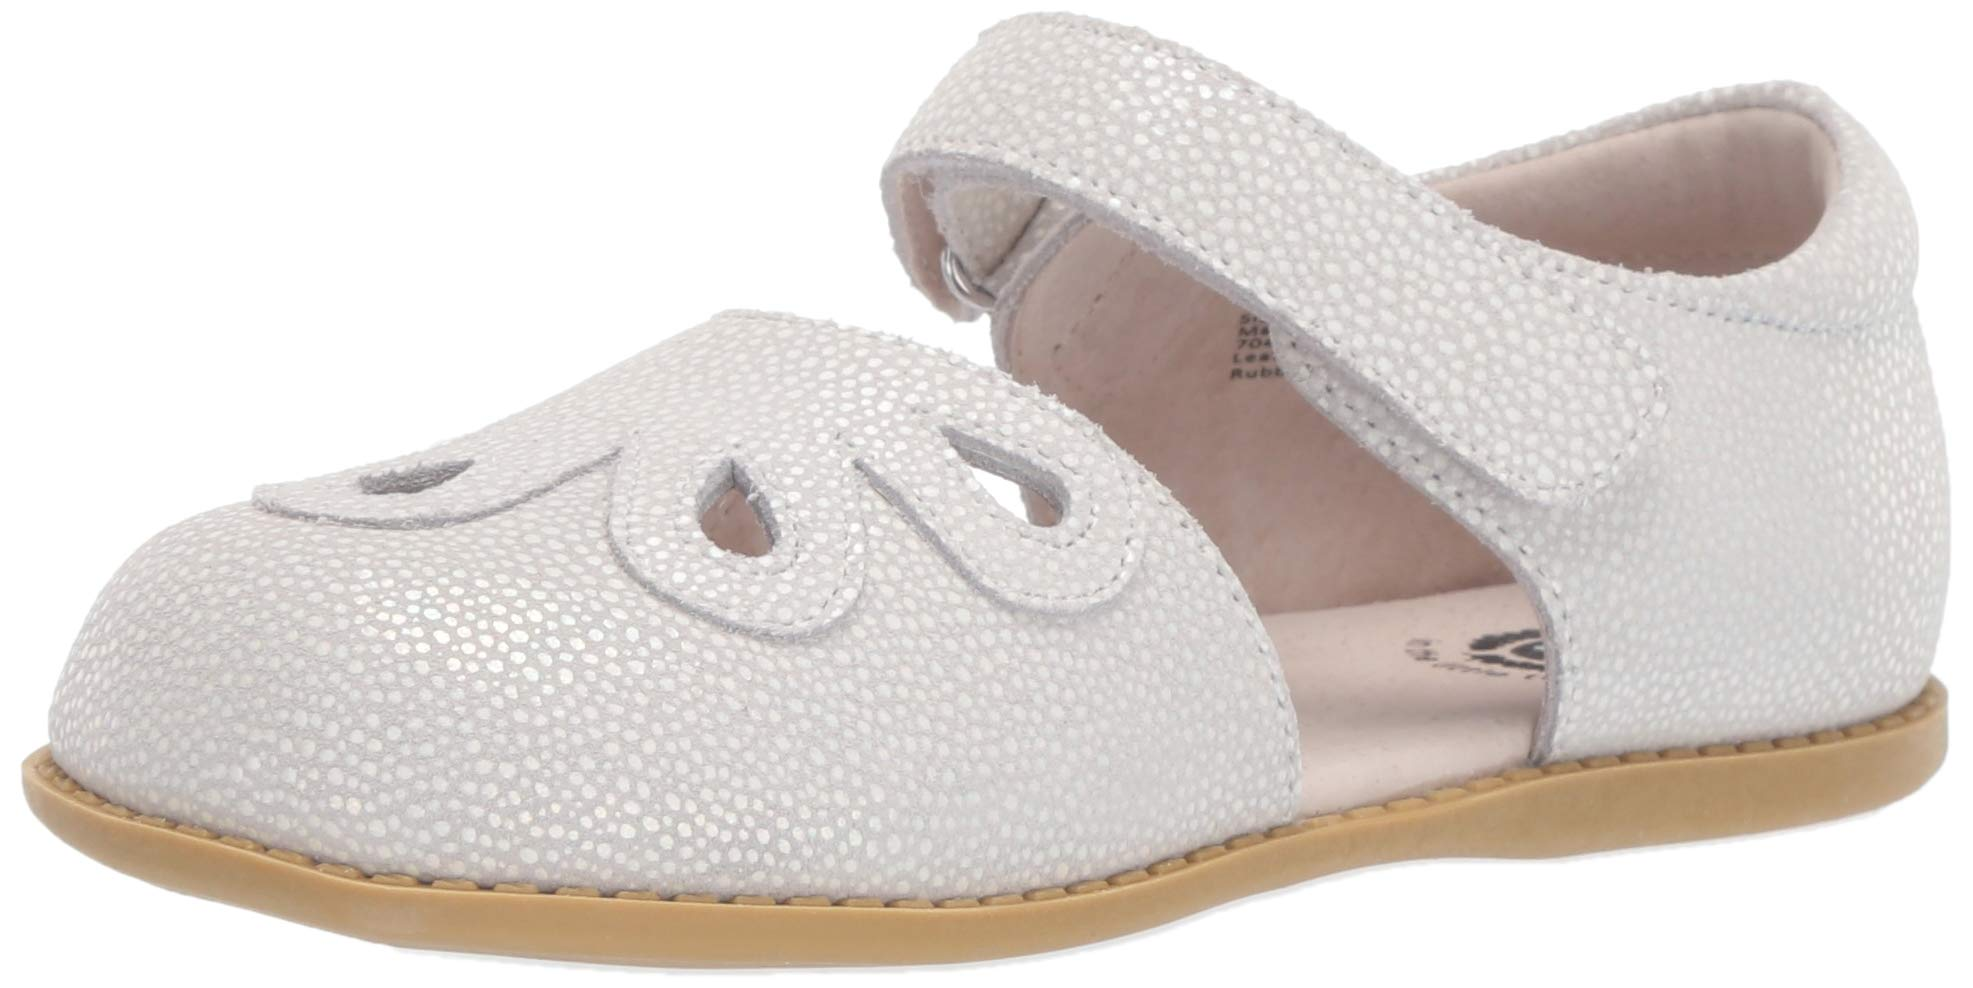 Livie & Luca Petal Leather Ankle Strap Mary Jane Flat Shoes, Toddler/Little Kid/Big Kid, Girls